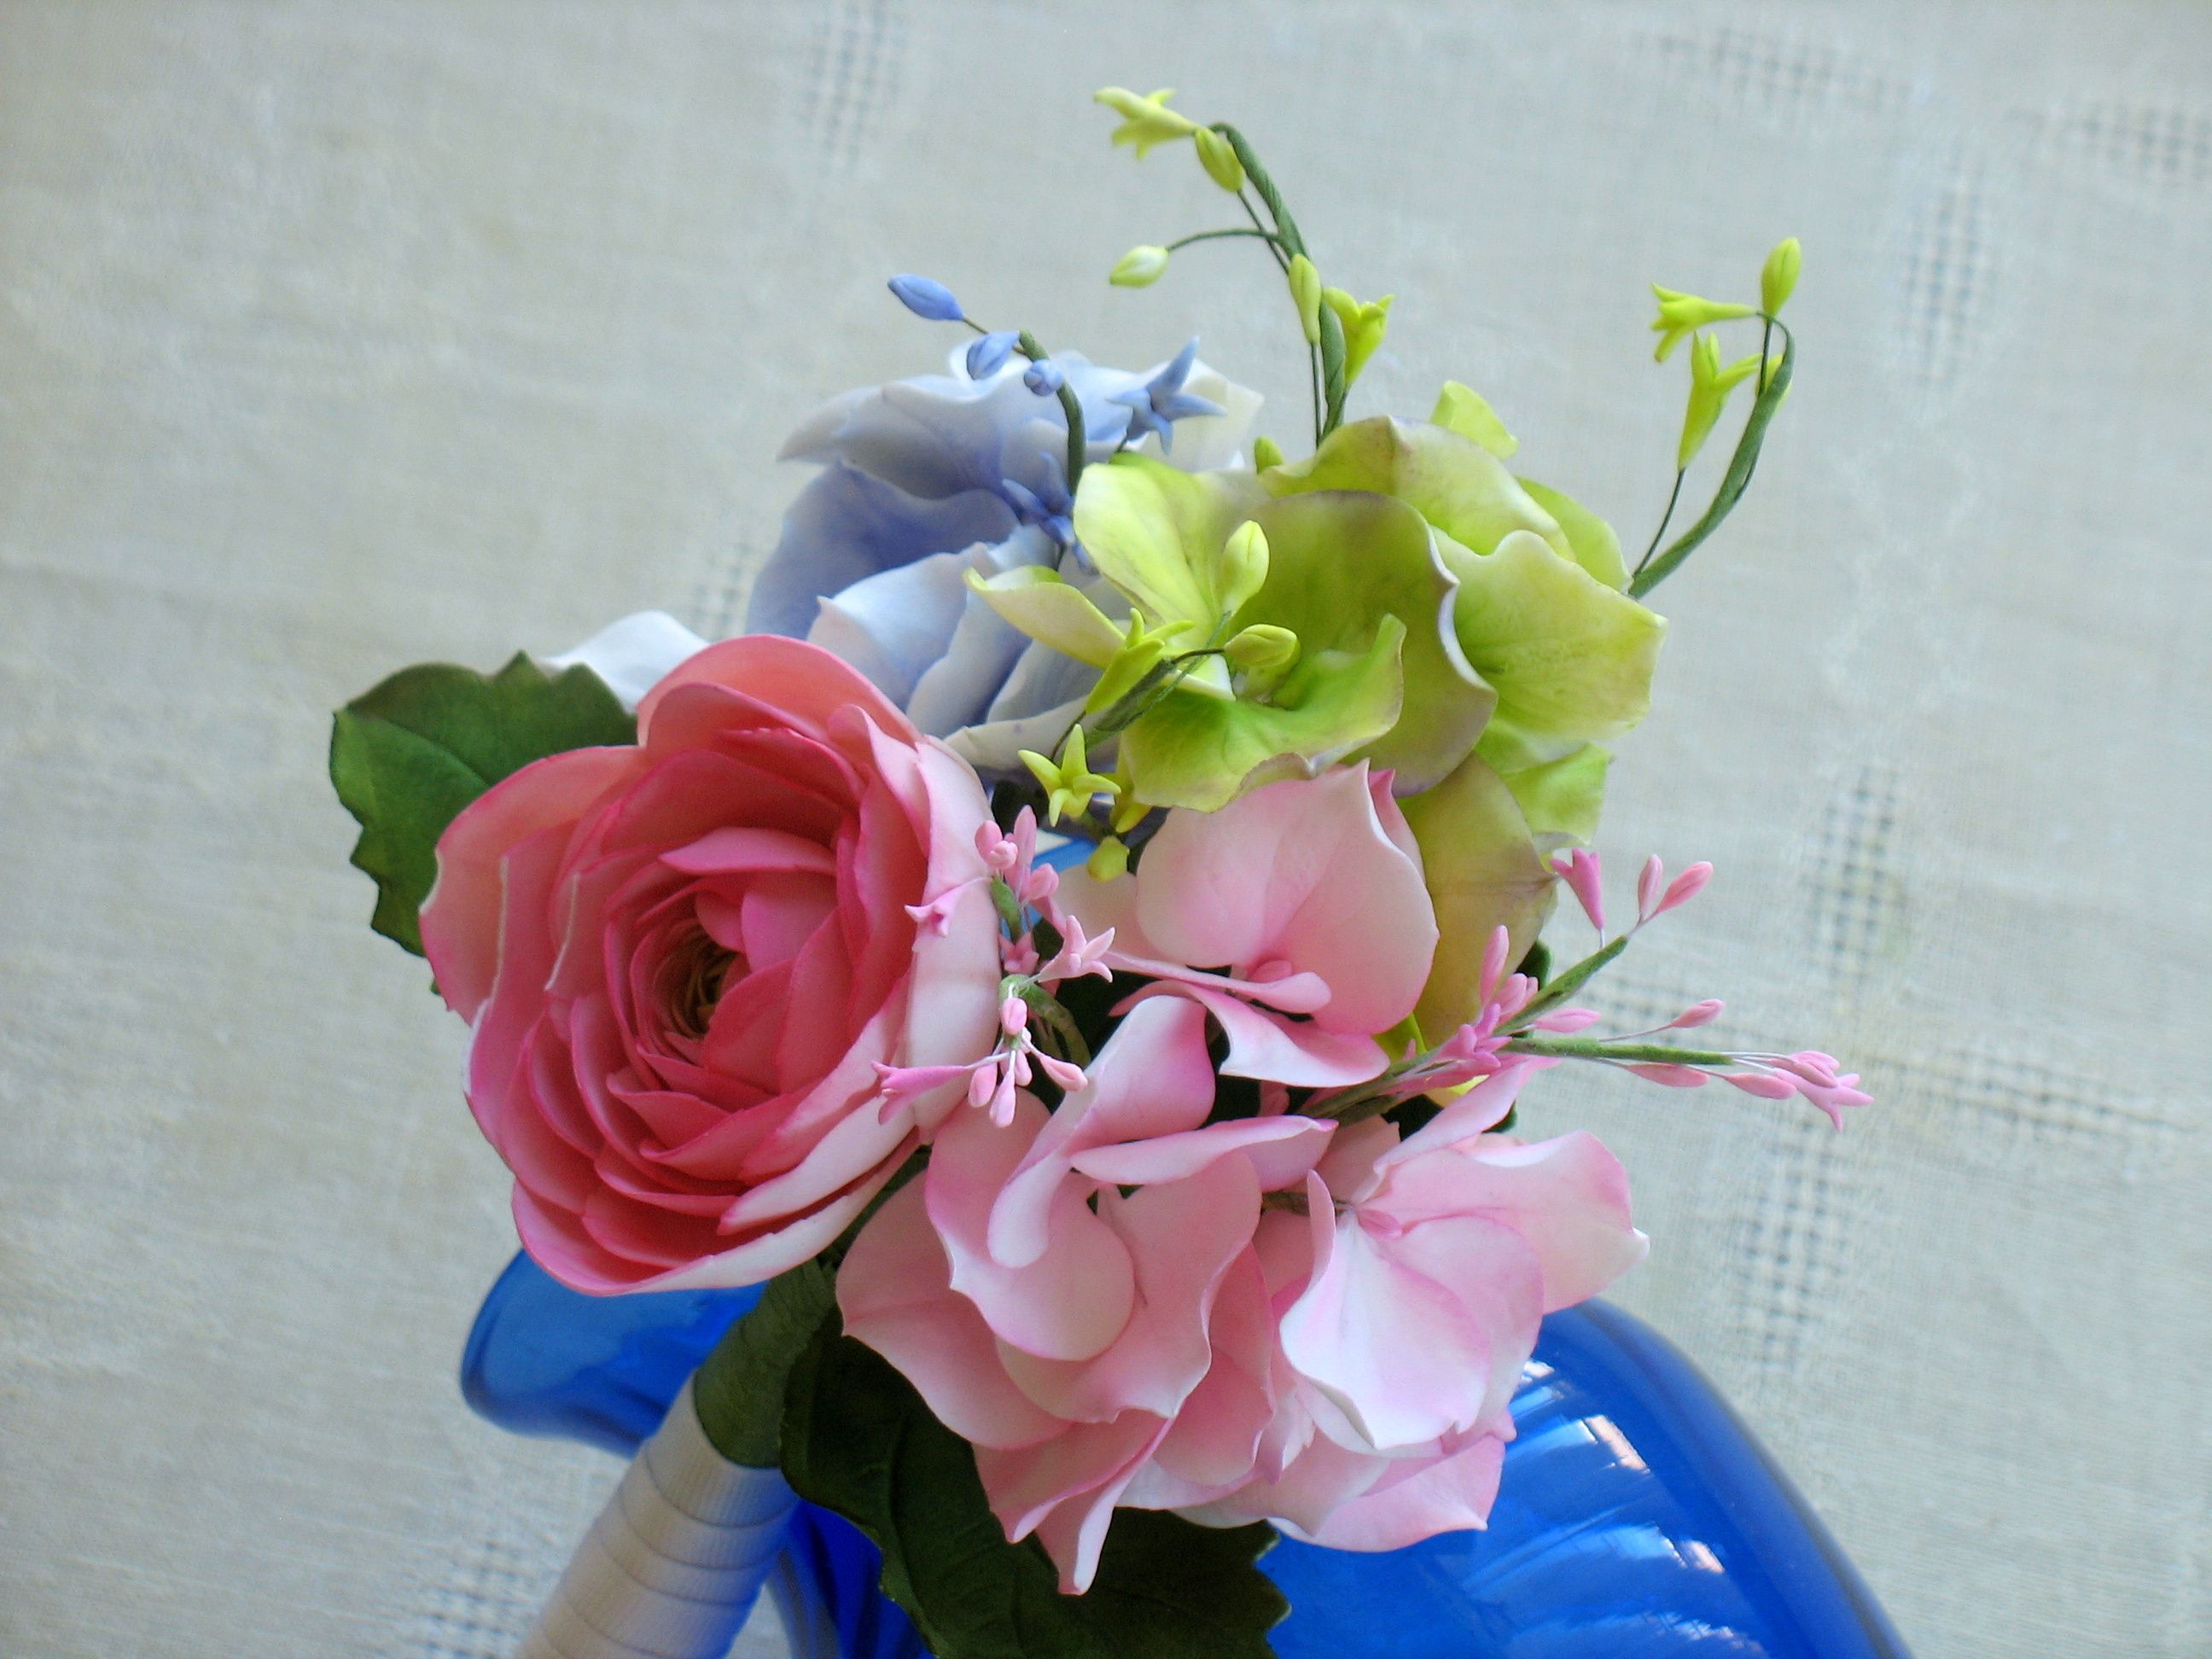 images of gumpaste flowers | gumpaste flower bouquet - Cake ...